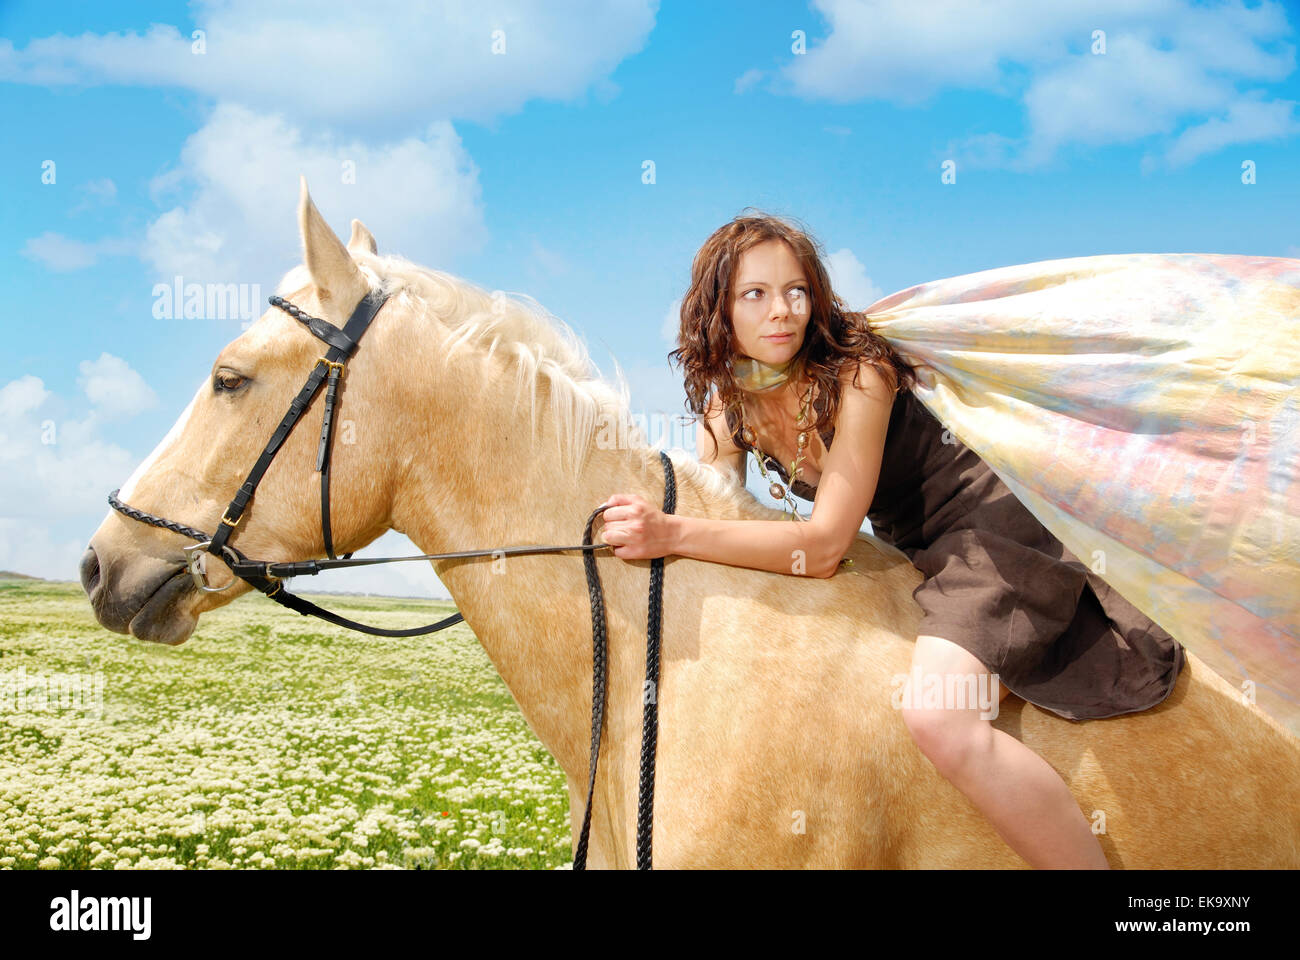 Escaping on a horseback - Stock Image